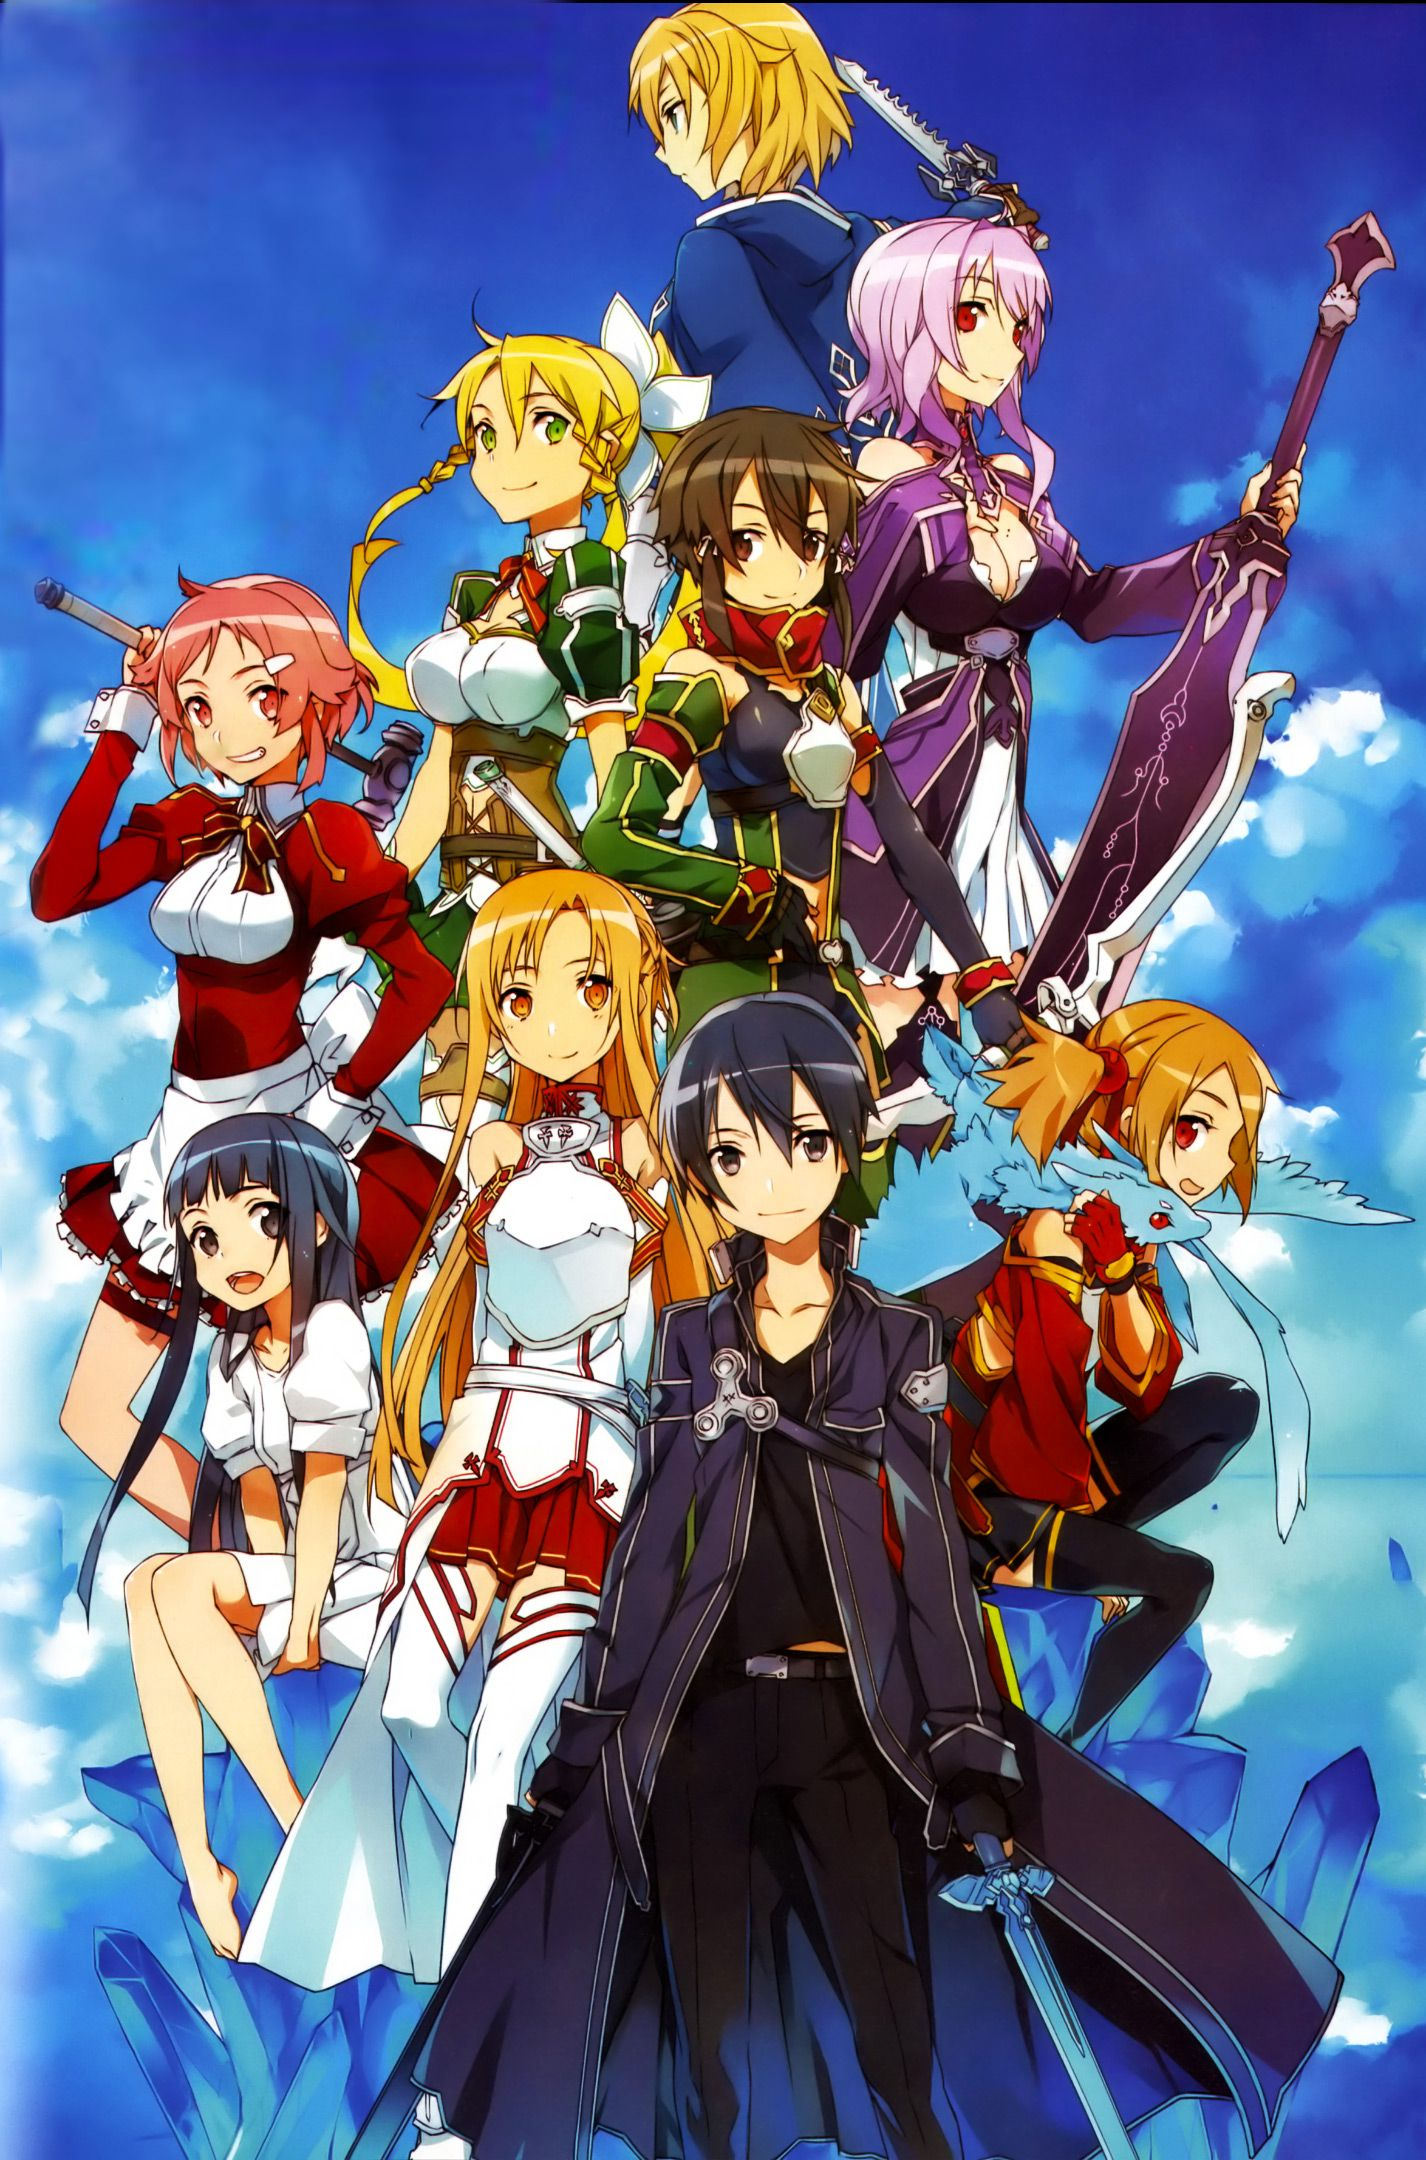 Sword Art Online, my favorite show. It's awesome you